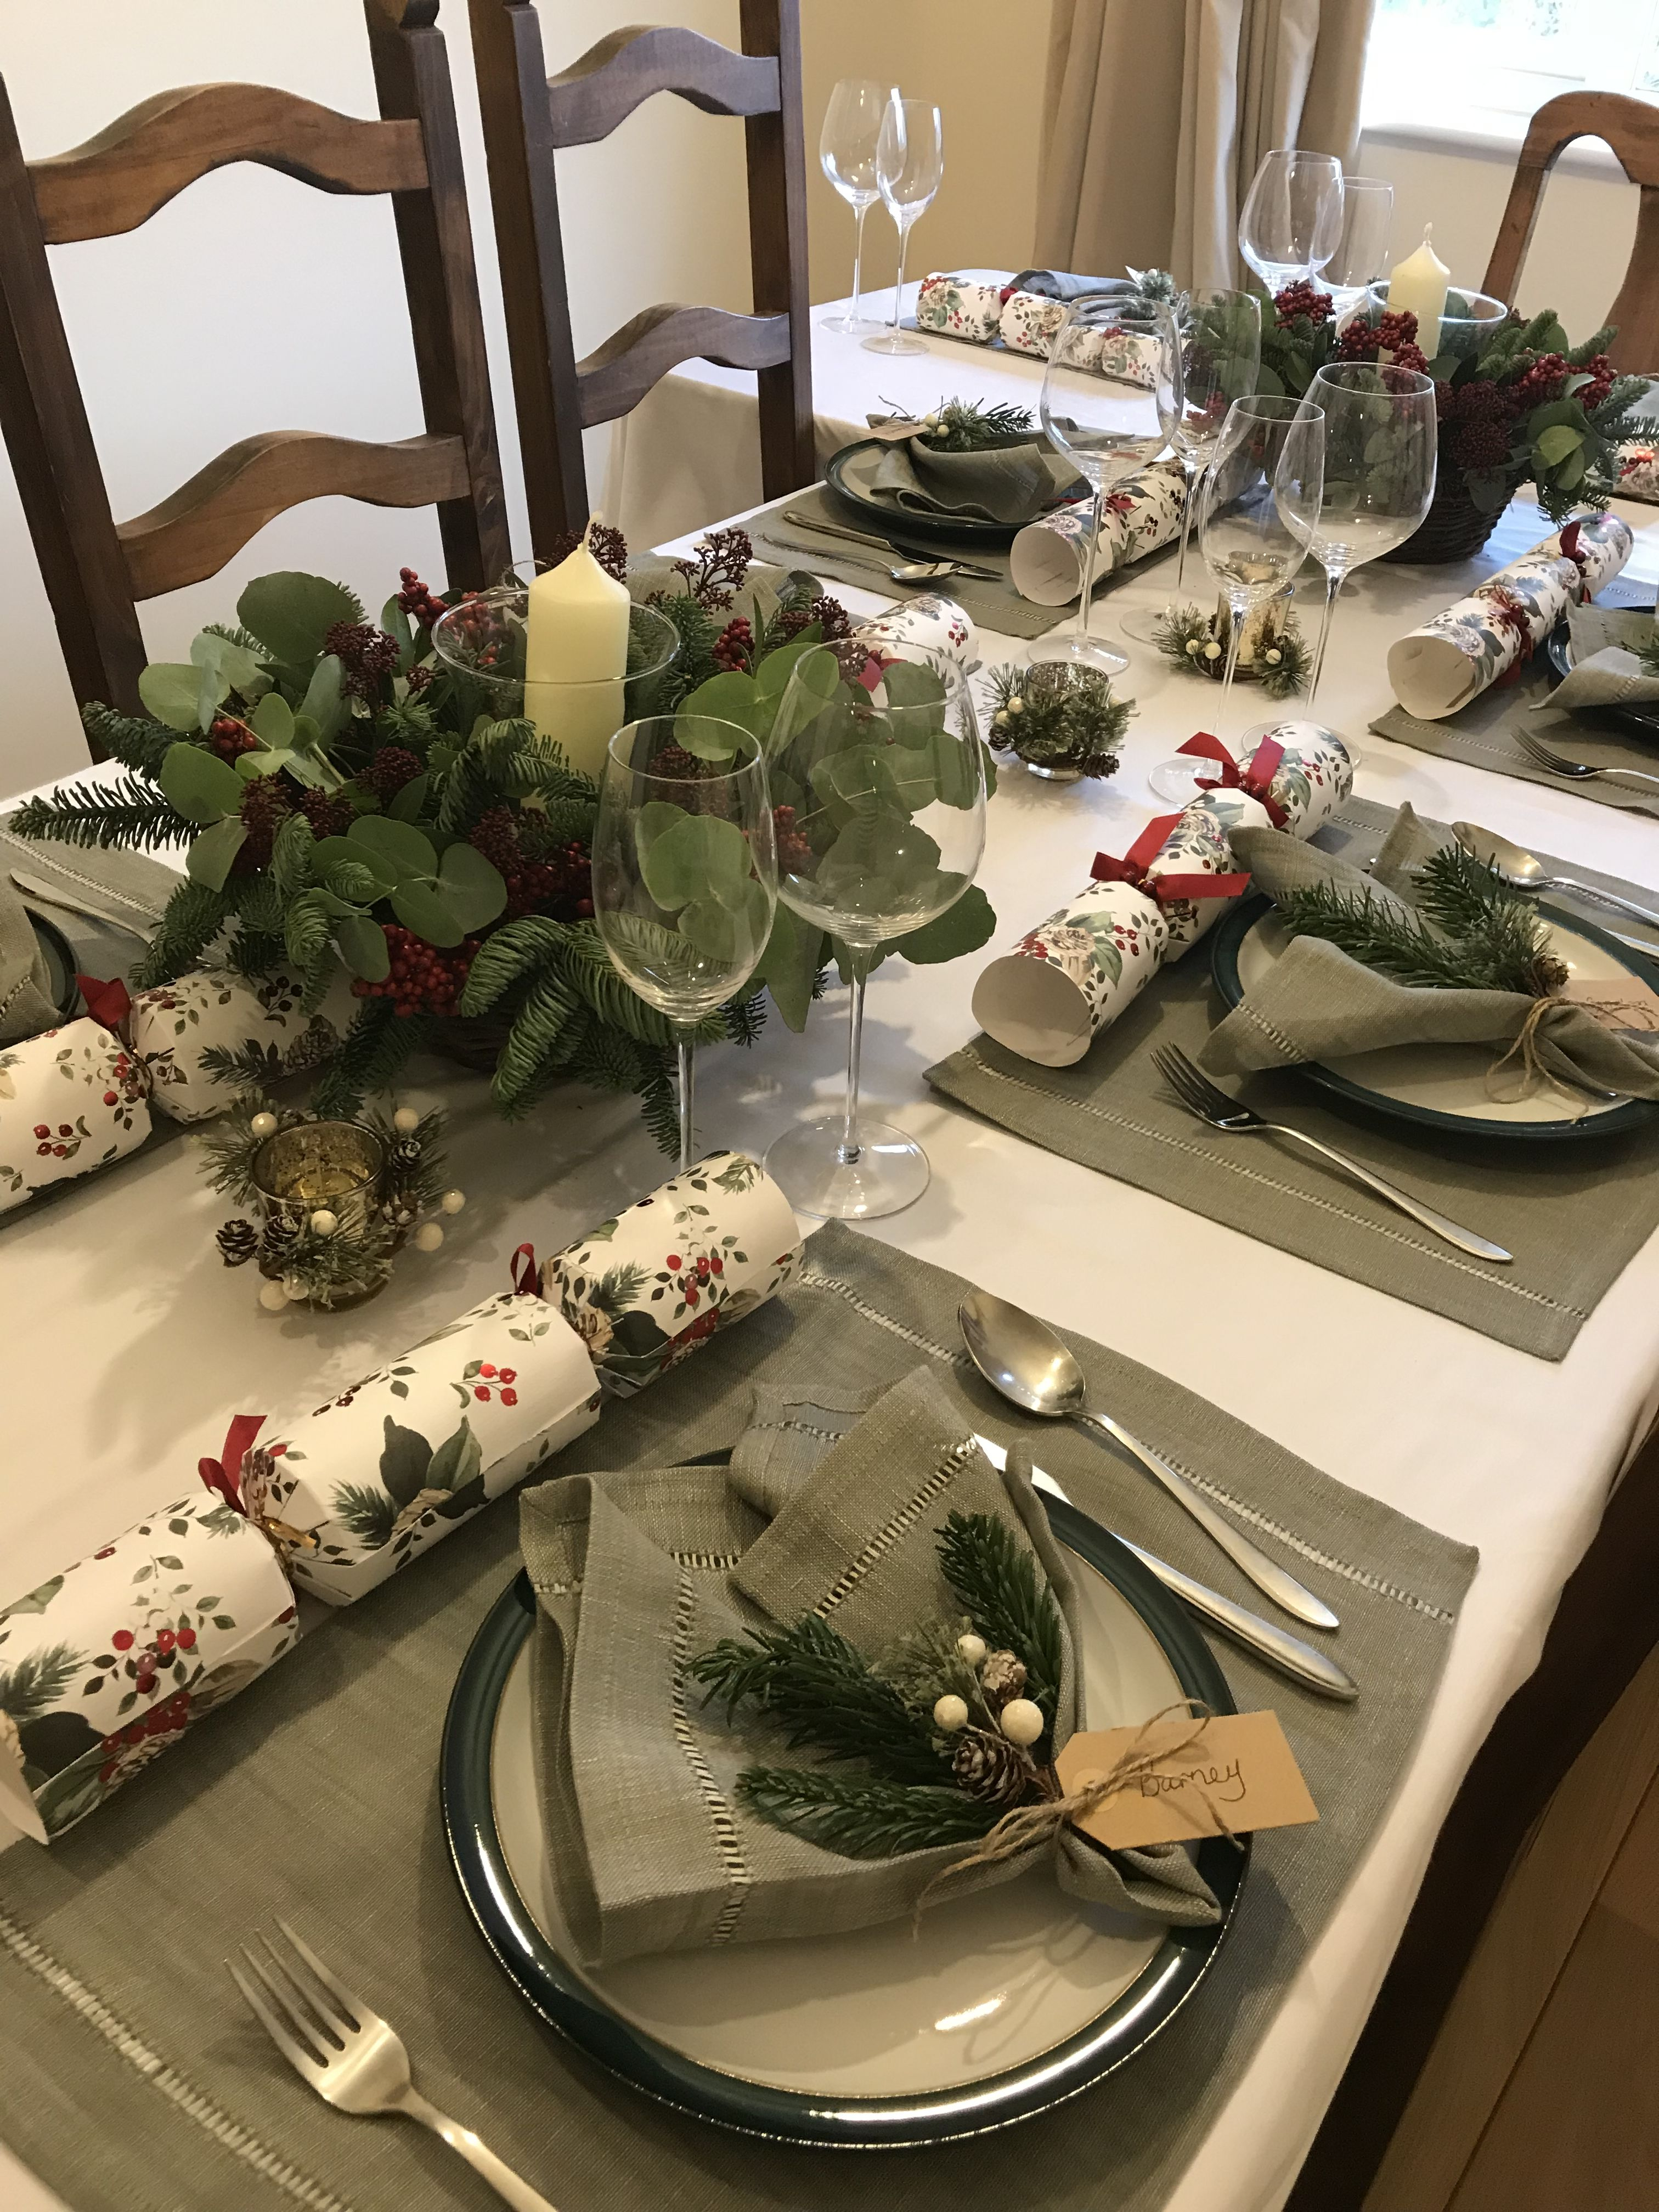 Green Christmas Table Decorations Natural Wreaths Holly Mistletoe Red Berries Christmas Table Christmas Table Decorations Table Decorations